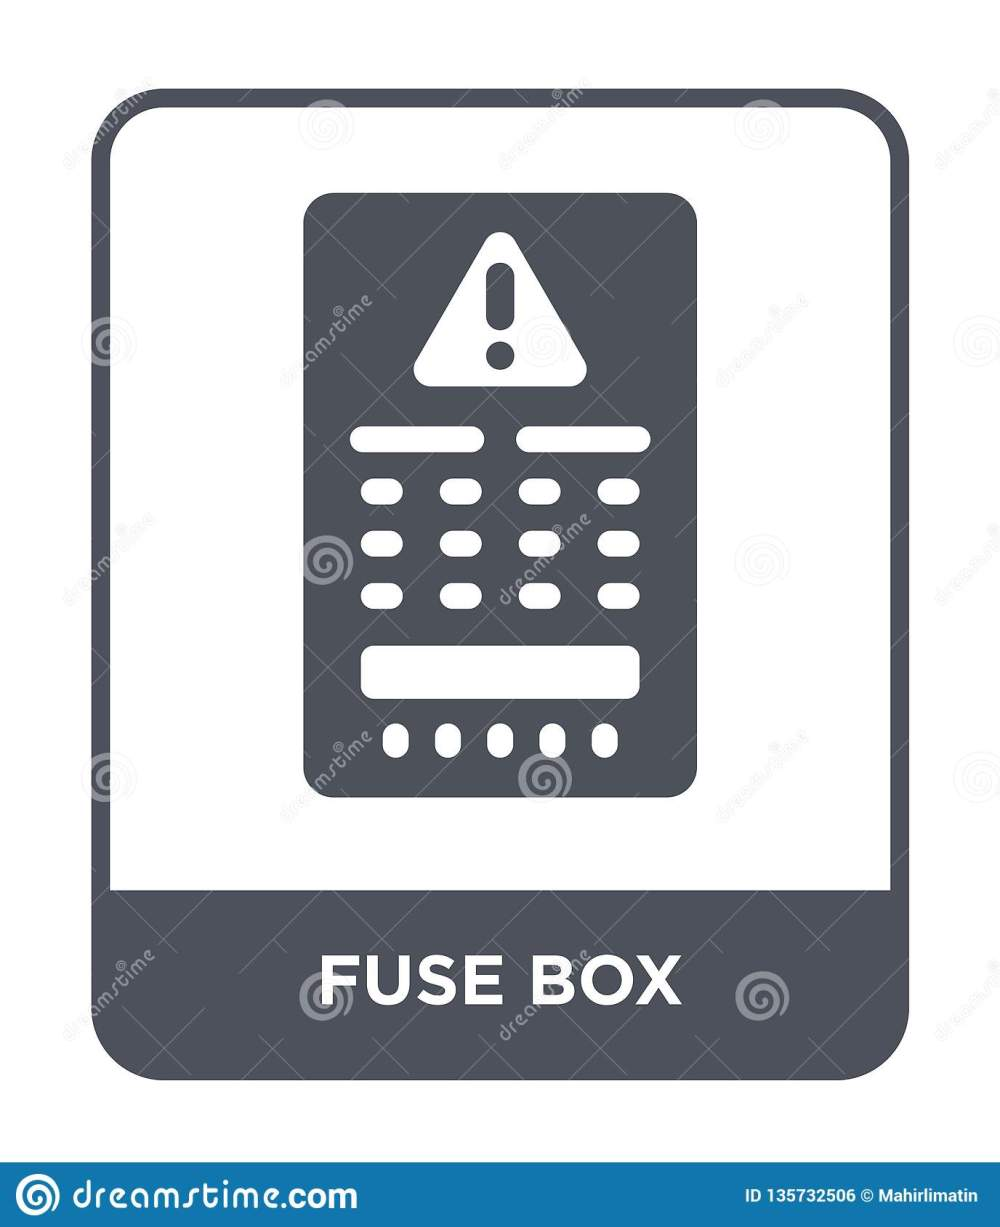 medium resolution of fuse box sign wiring diagram fuse box icon in trendy design style fuse box icon isolated